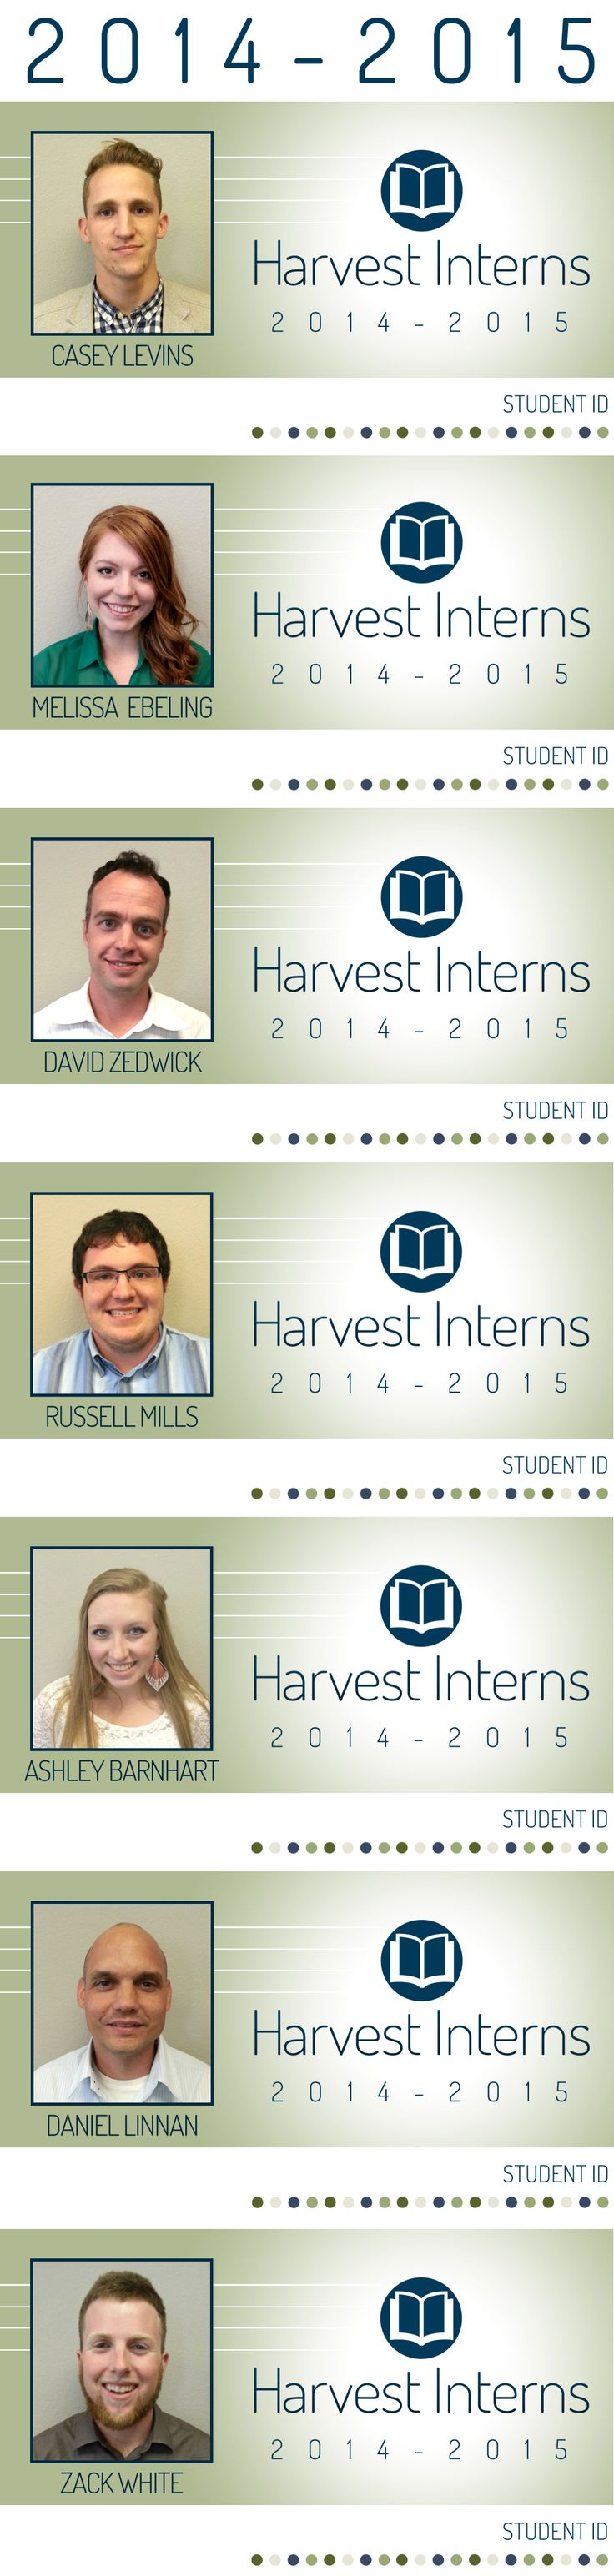 50 best harvest church meridian images on pinterest harvest church student id cards harvest church in meridian idaho harvest interns click for malvernweather Gallery